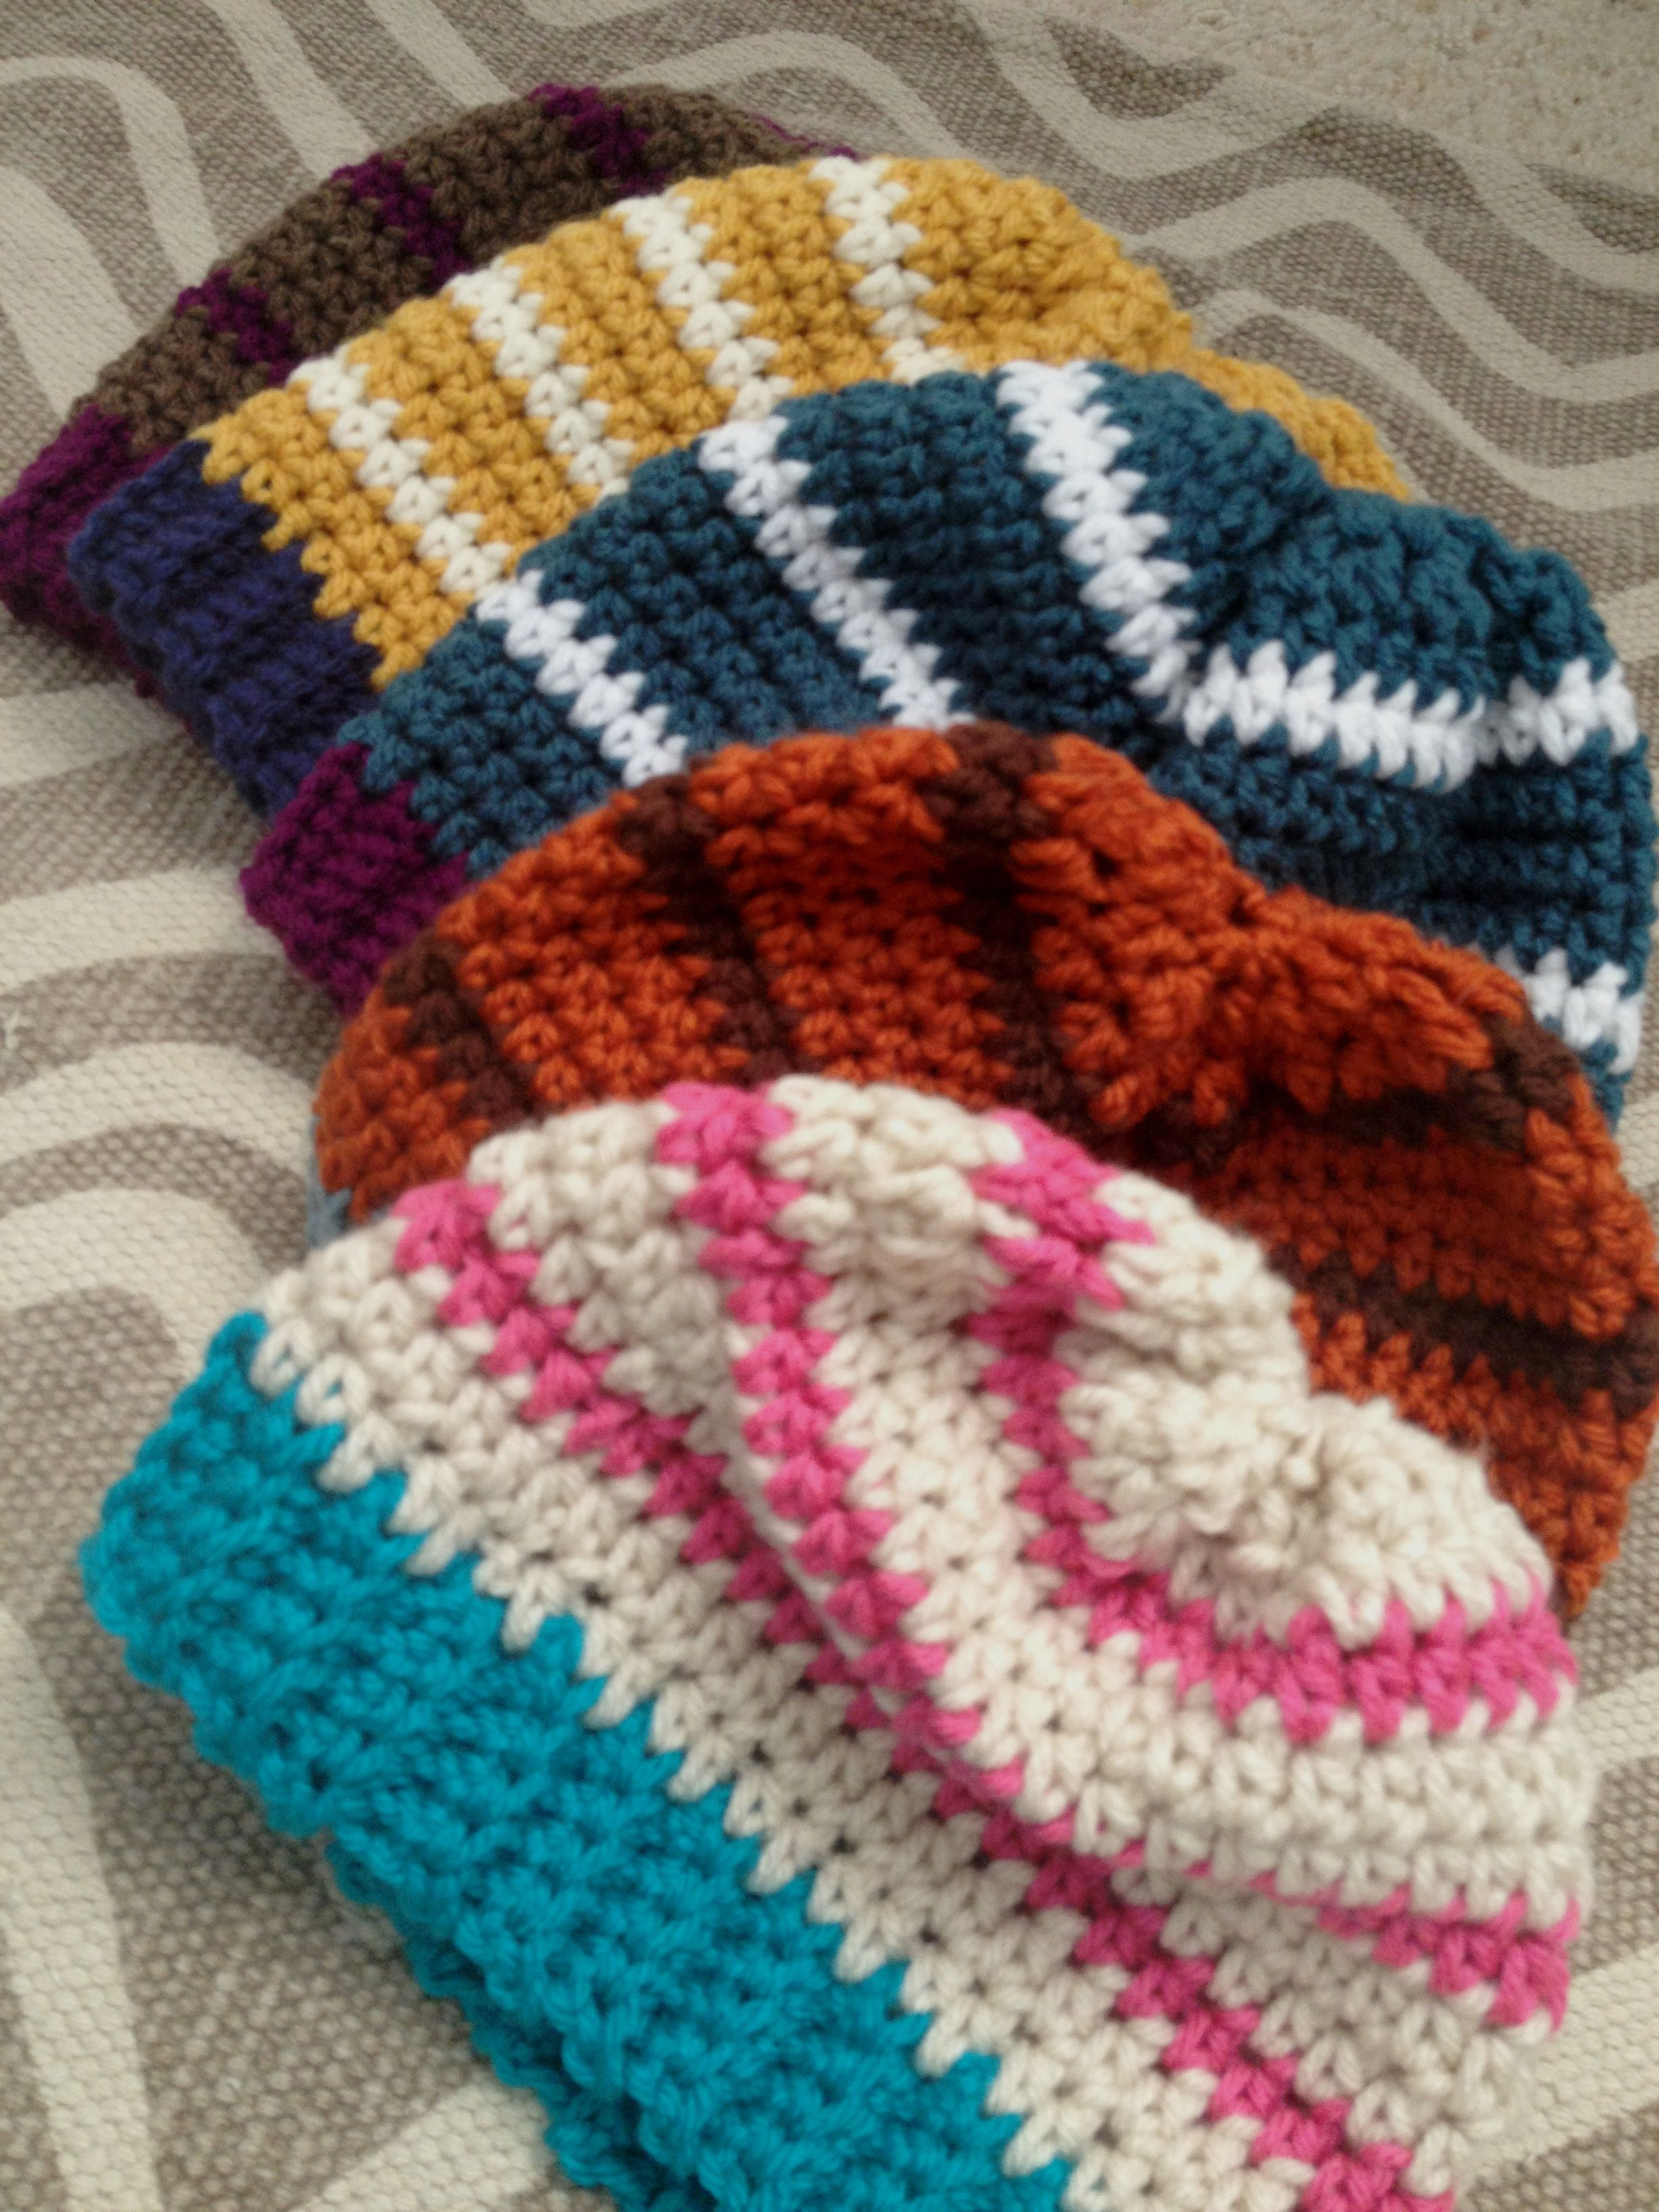 Simple Slouch Crochet Hat Pattern | Crochet Hats | Pinterest ...